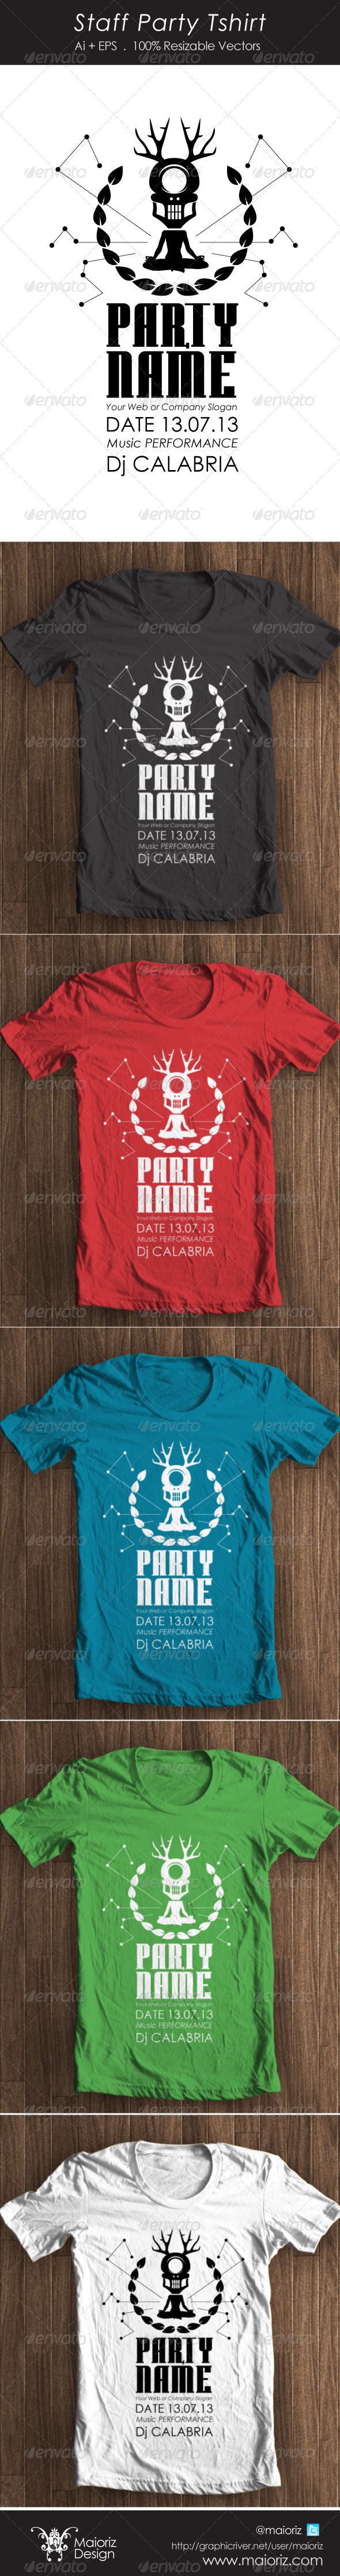 GraphicRiver Staff Party Tshirt 4360255